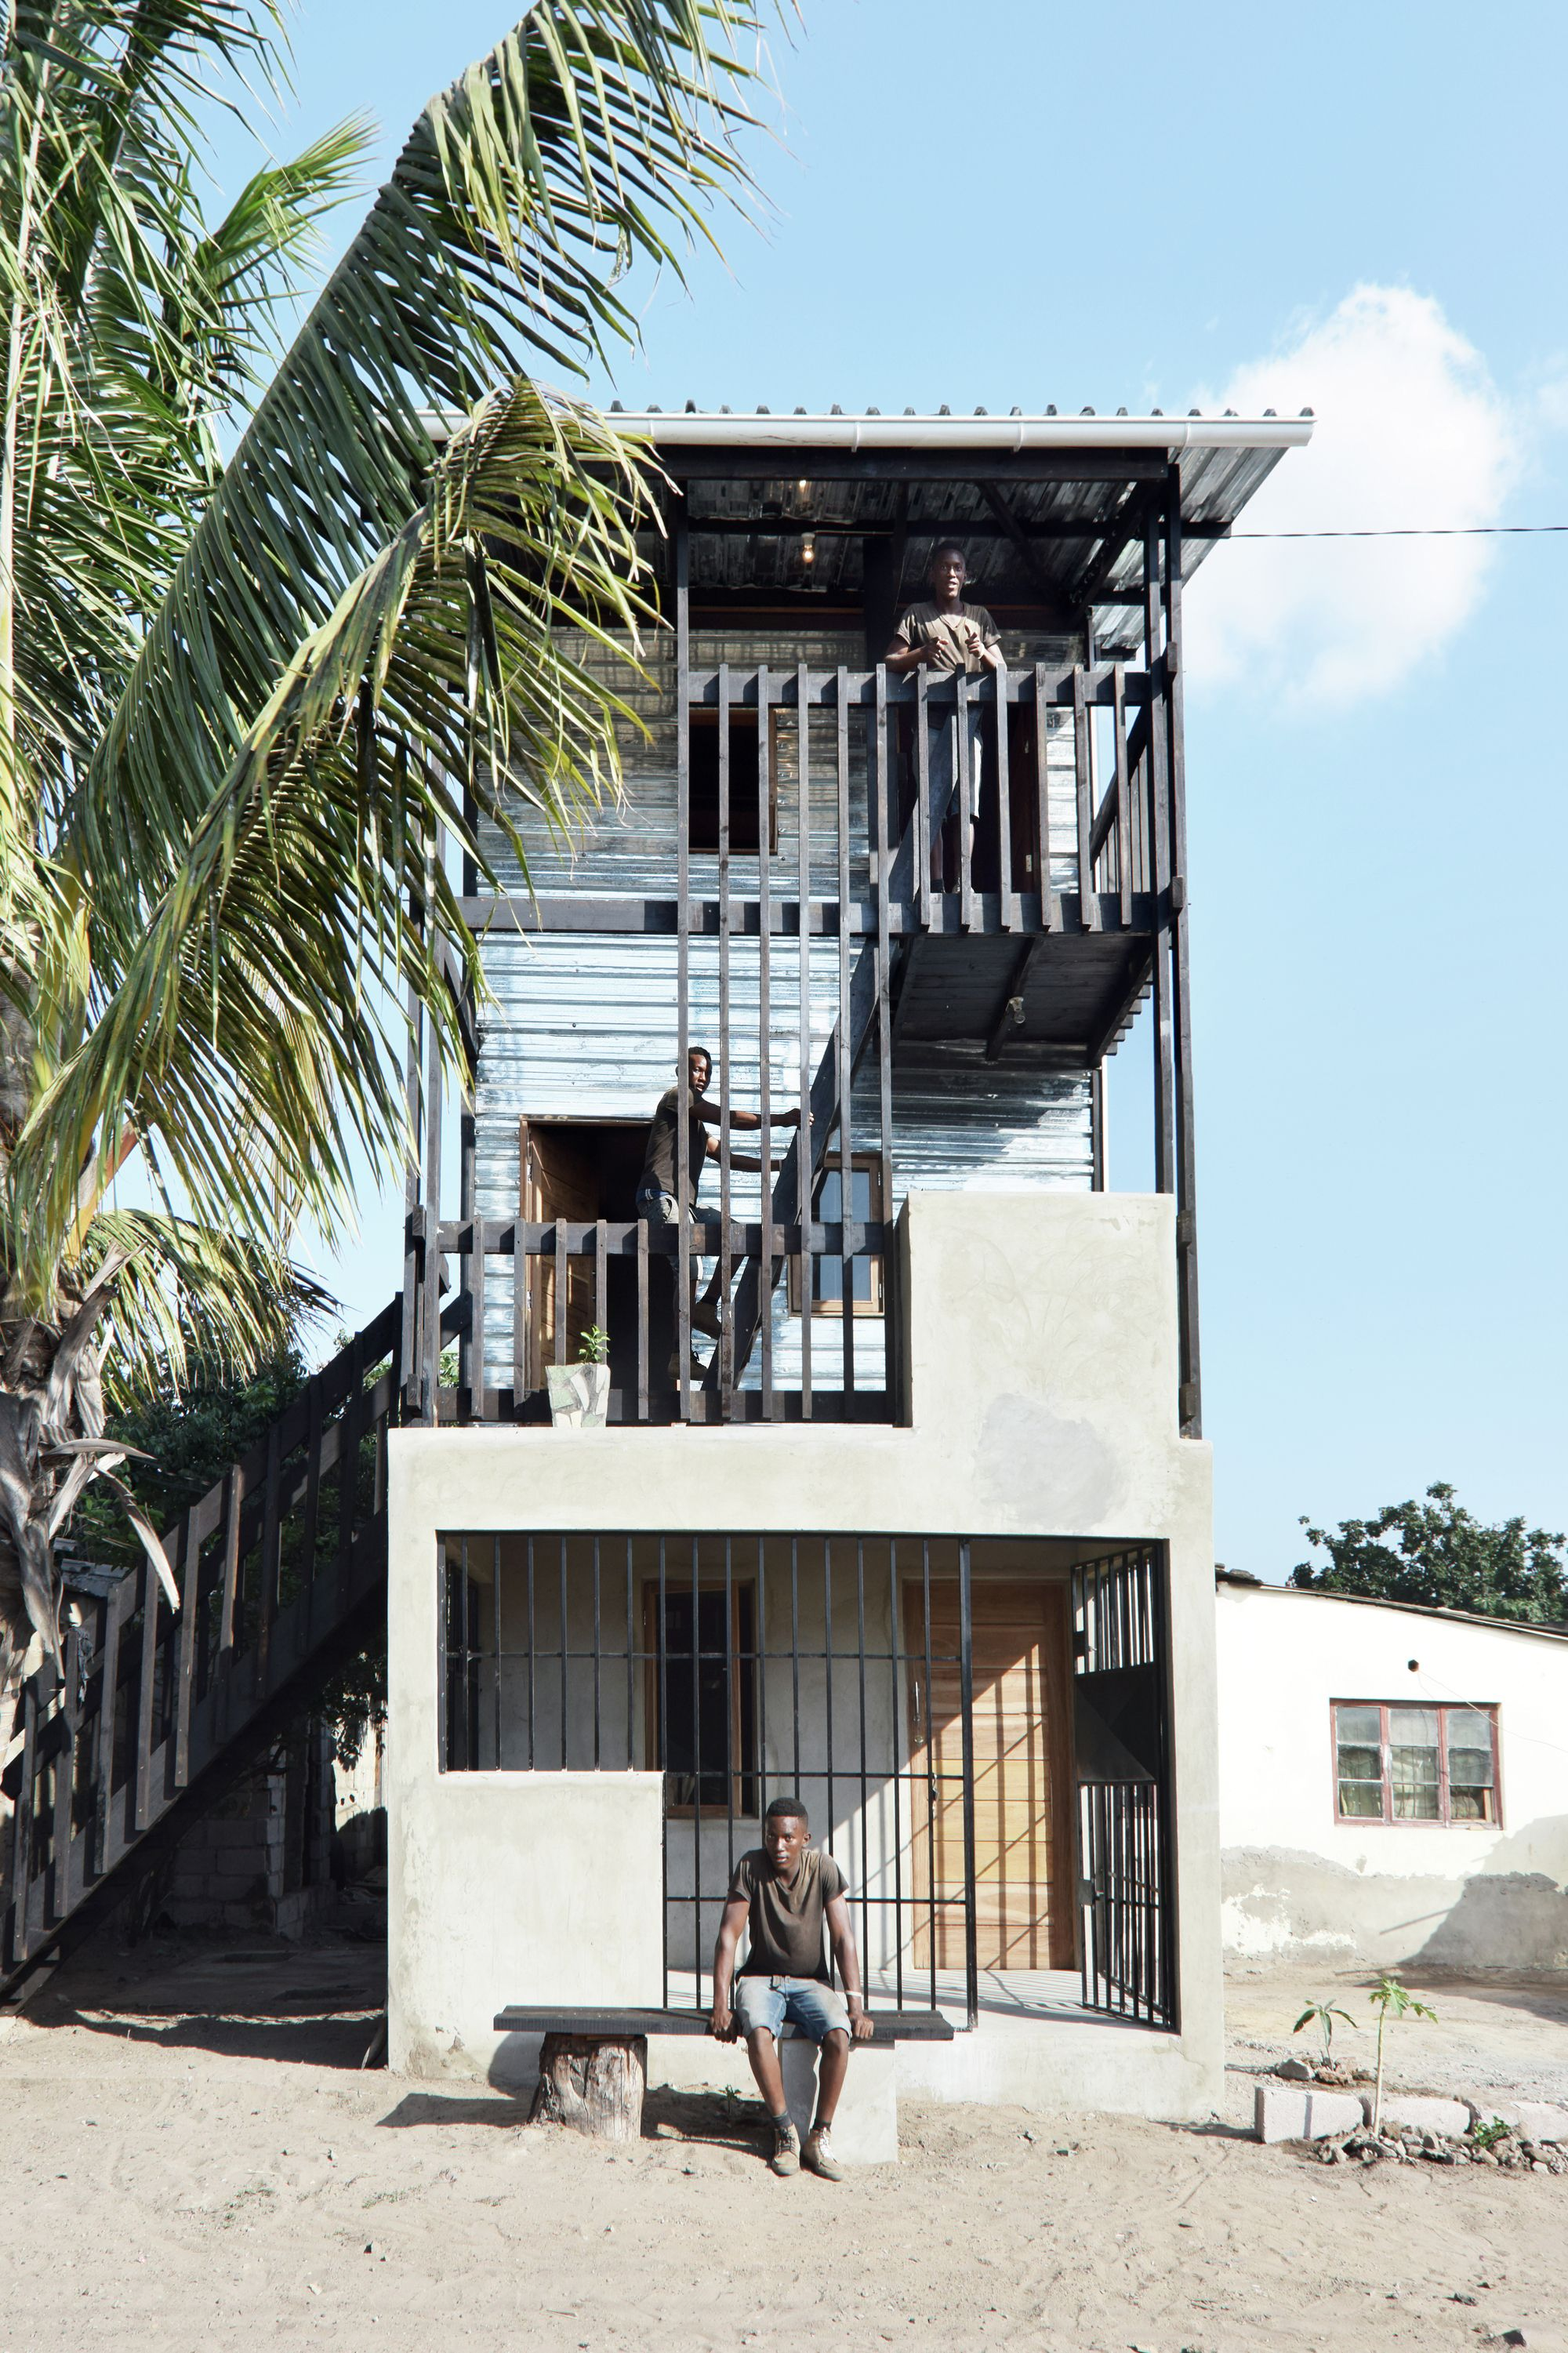 Royal Danish Academy Of Fine Arts Designs Low Income Housing Prototypes In Mozambique Architecture Low Cost Housing Architecture Exterior